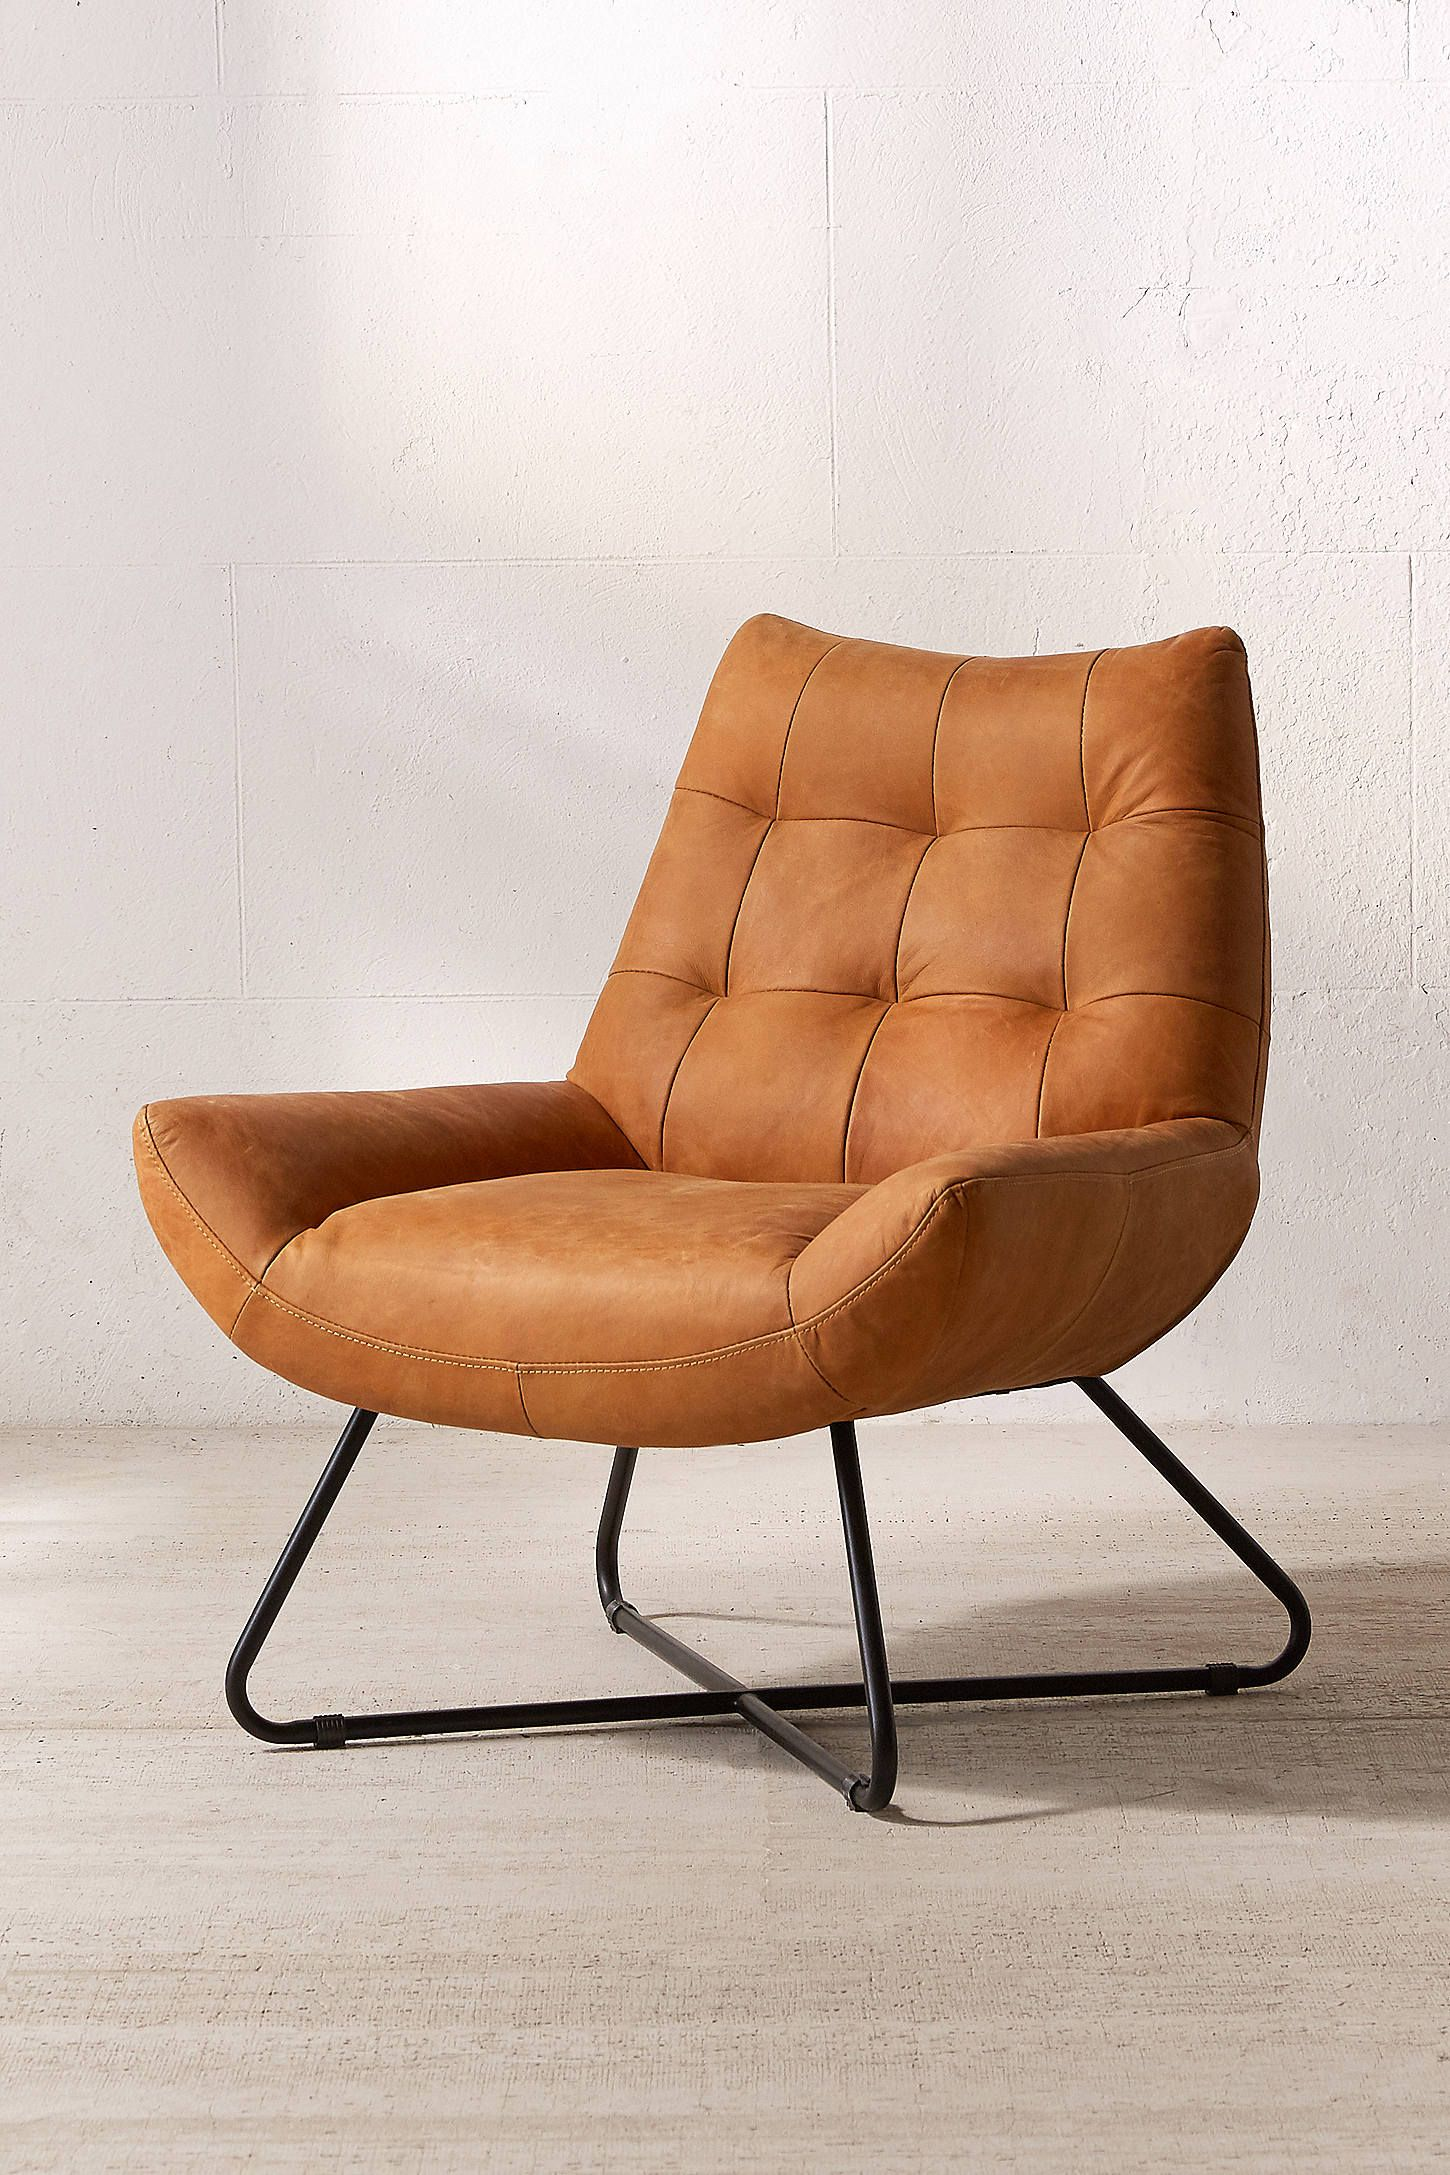 Seymour Leather Chair Retro Chair Leather Chair Modern Leather Chair